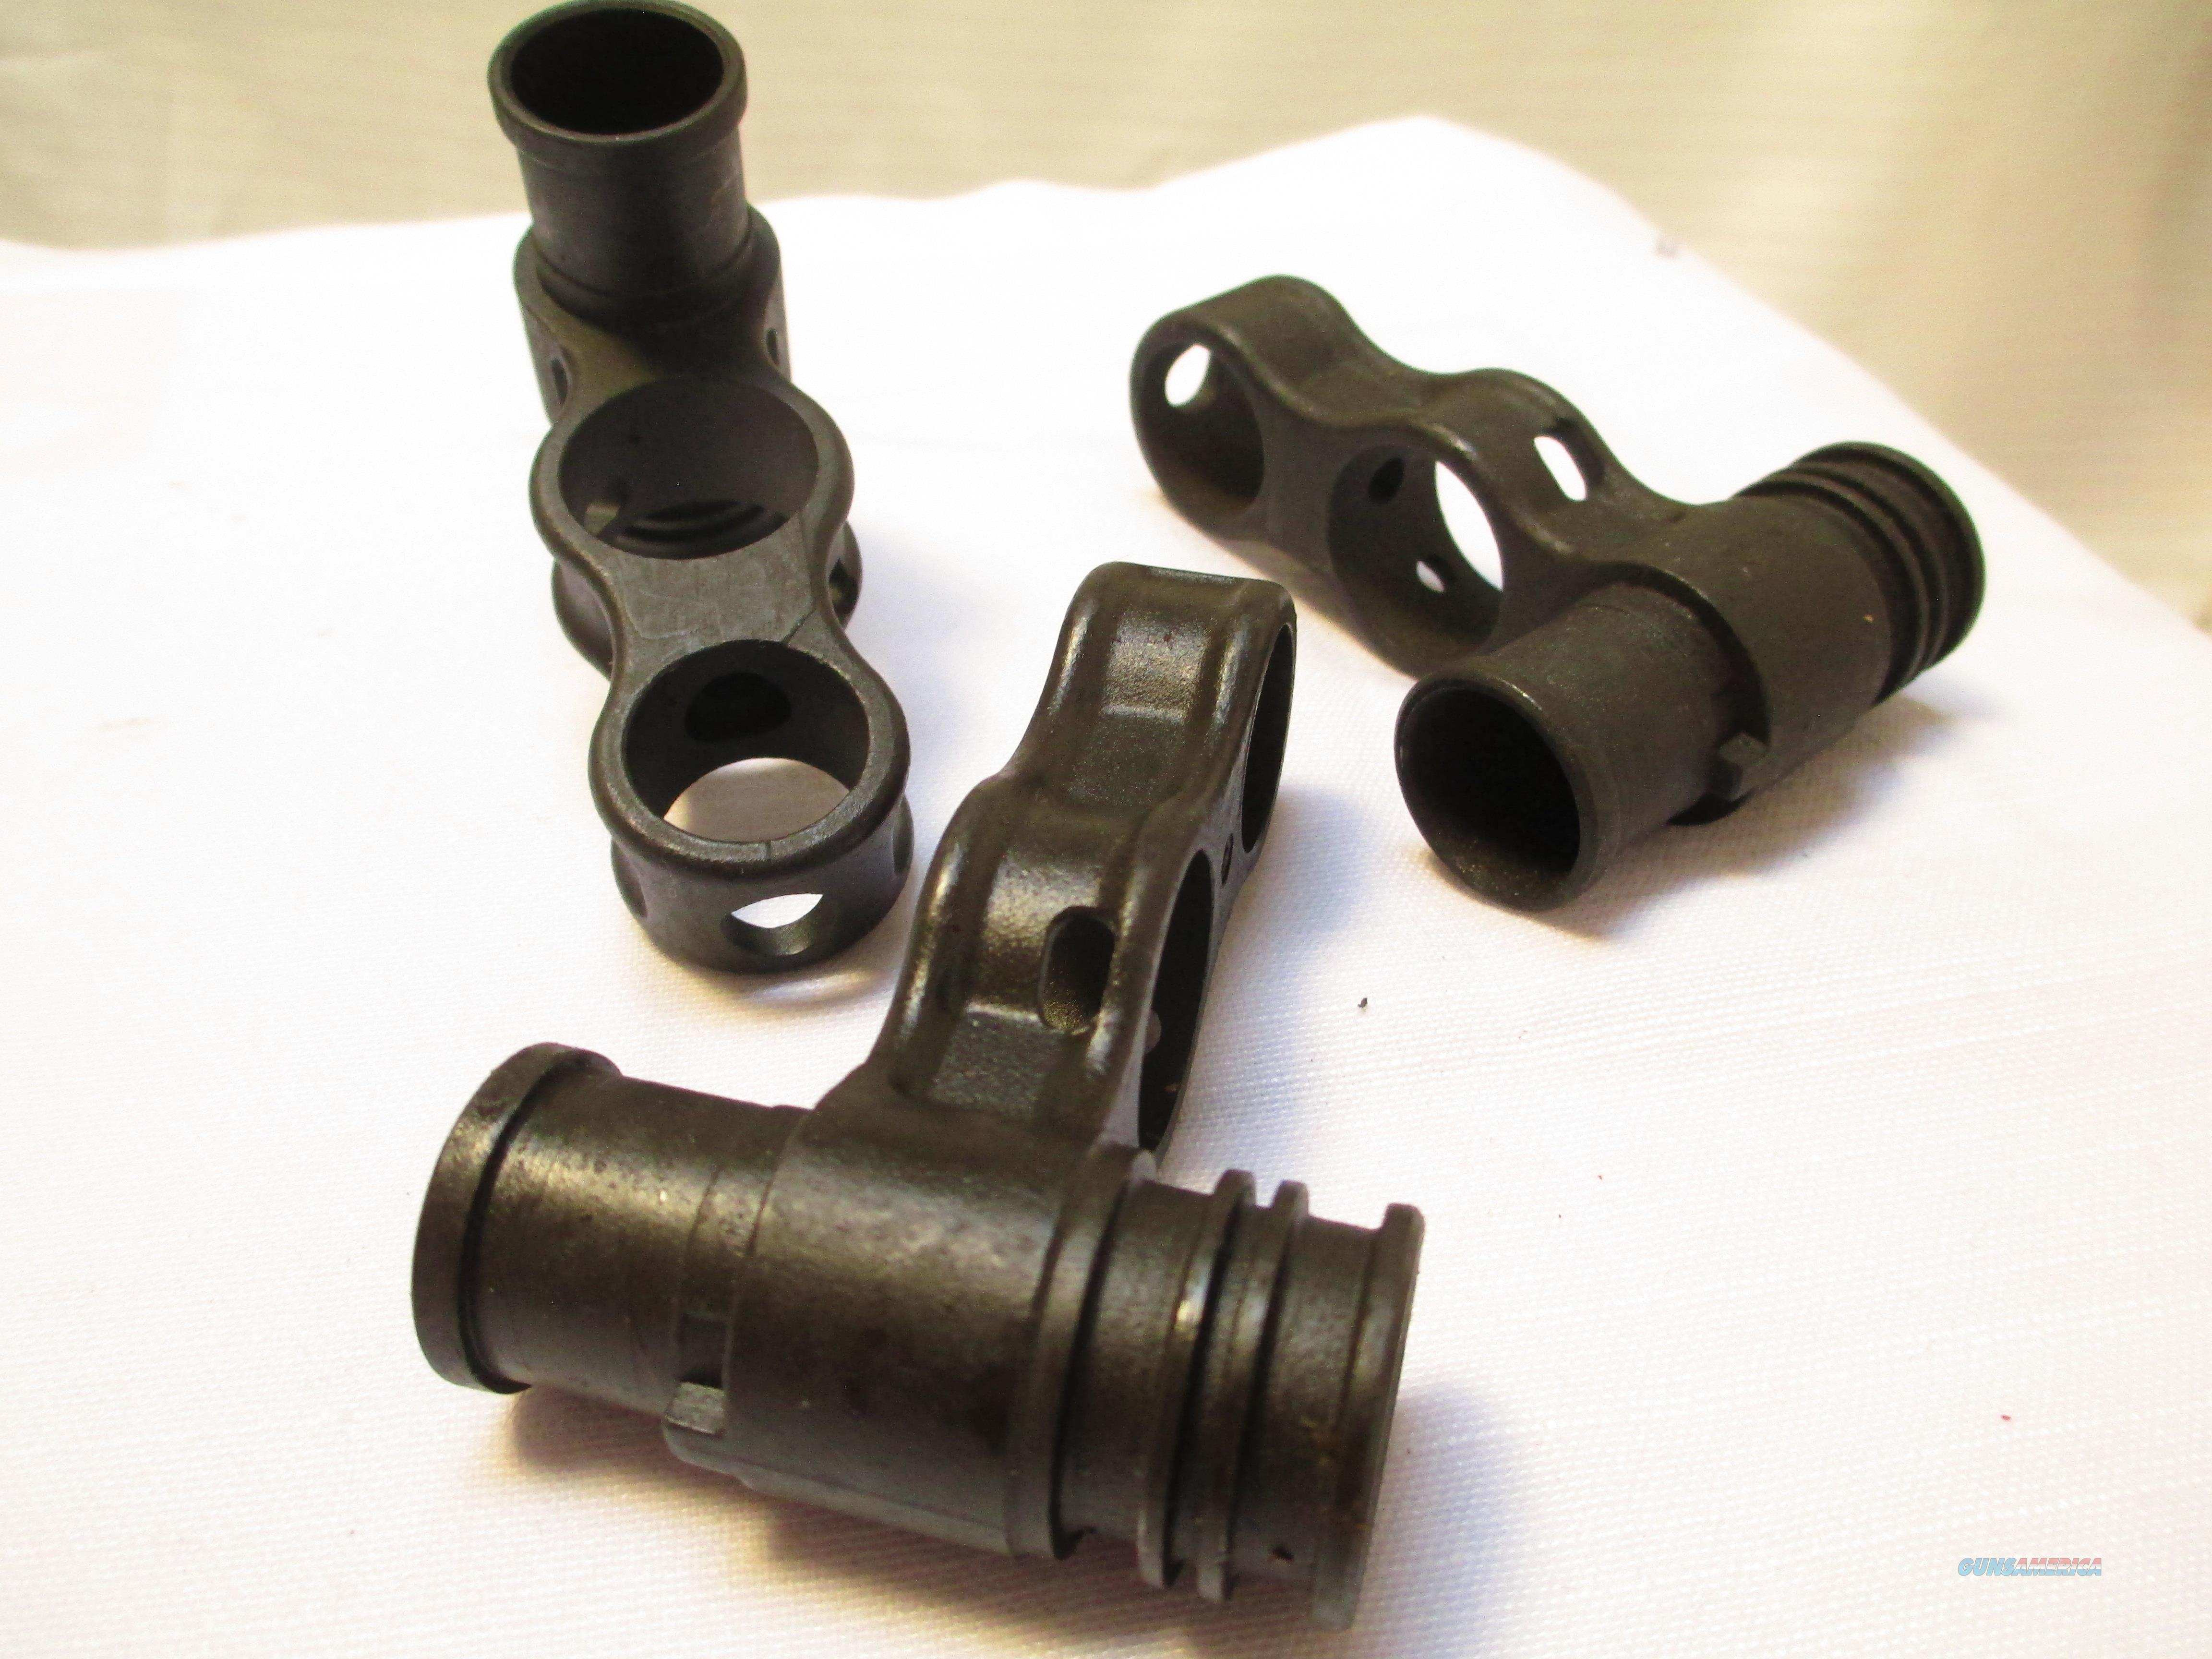 """CETME C """"triple frame"""" FRONT SIGHT ASSEMBLY  Non-Guns > Gun Parts > Military - Foreign"""